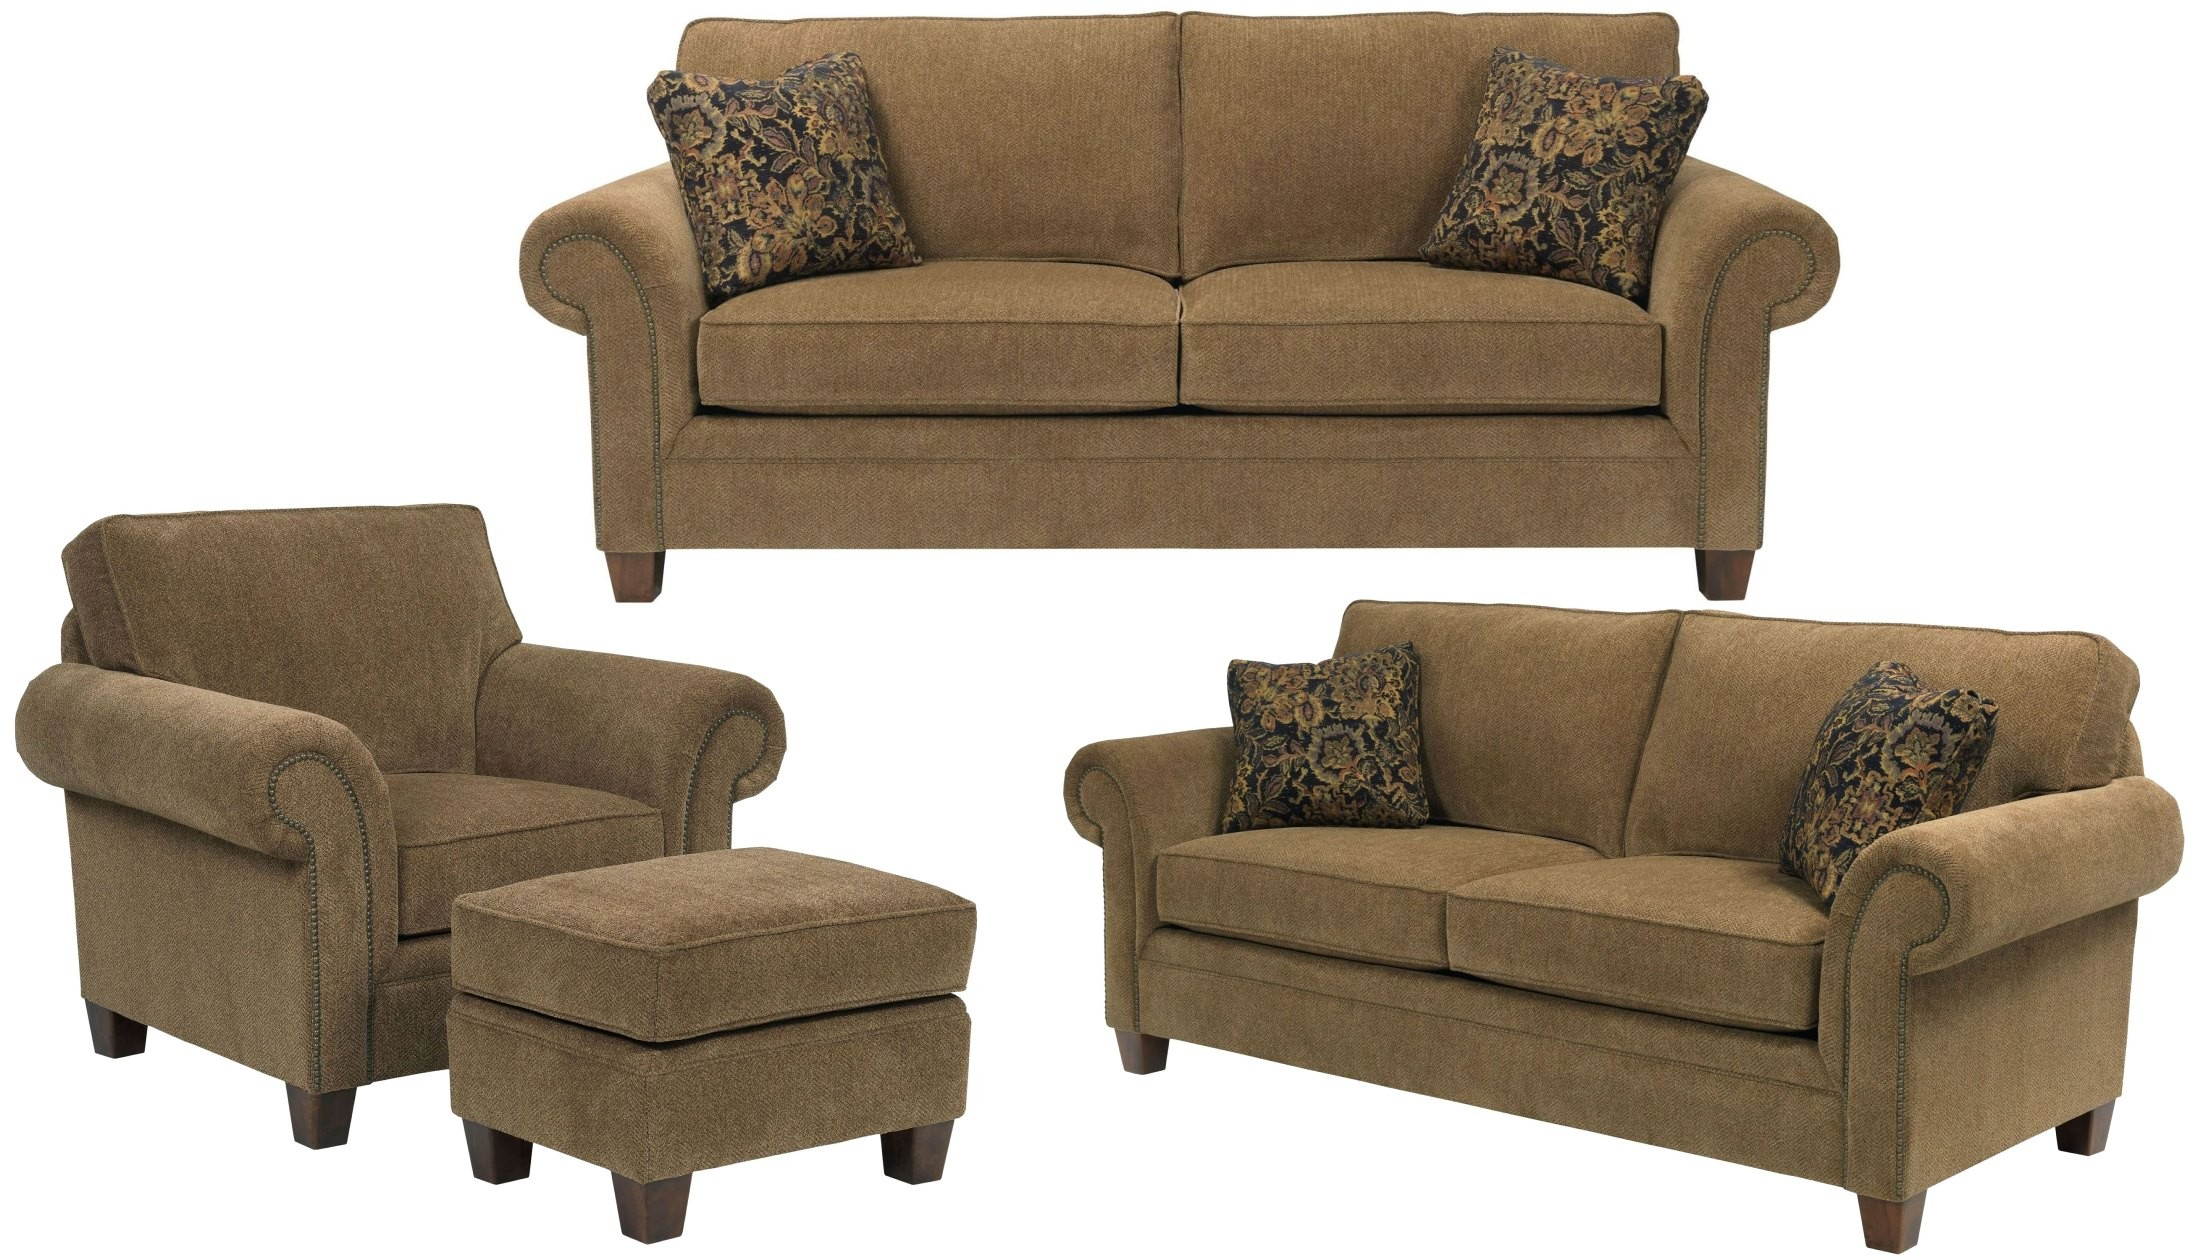 Travis Walnut Chenille Fabric Living Room Set From Broyhill 7004 3q 8994 78 Coleman Furniture